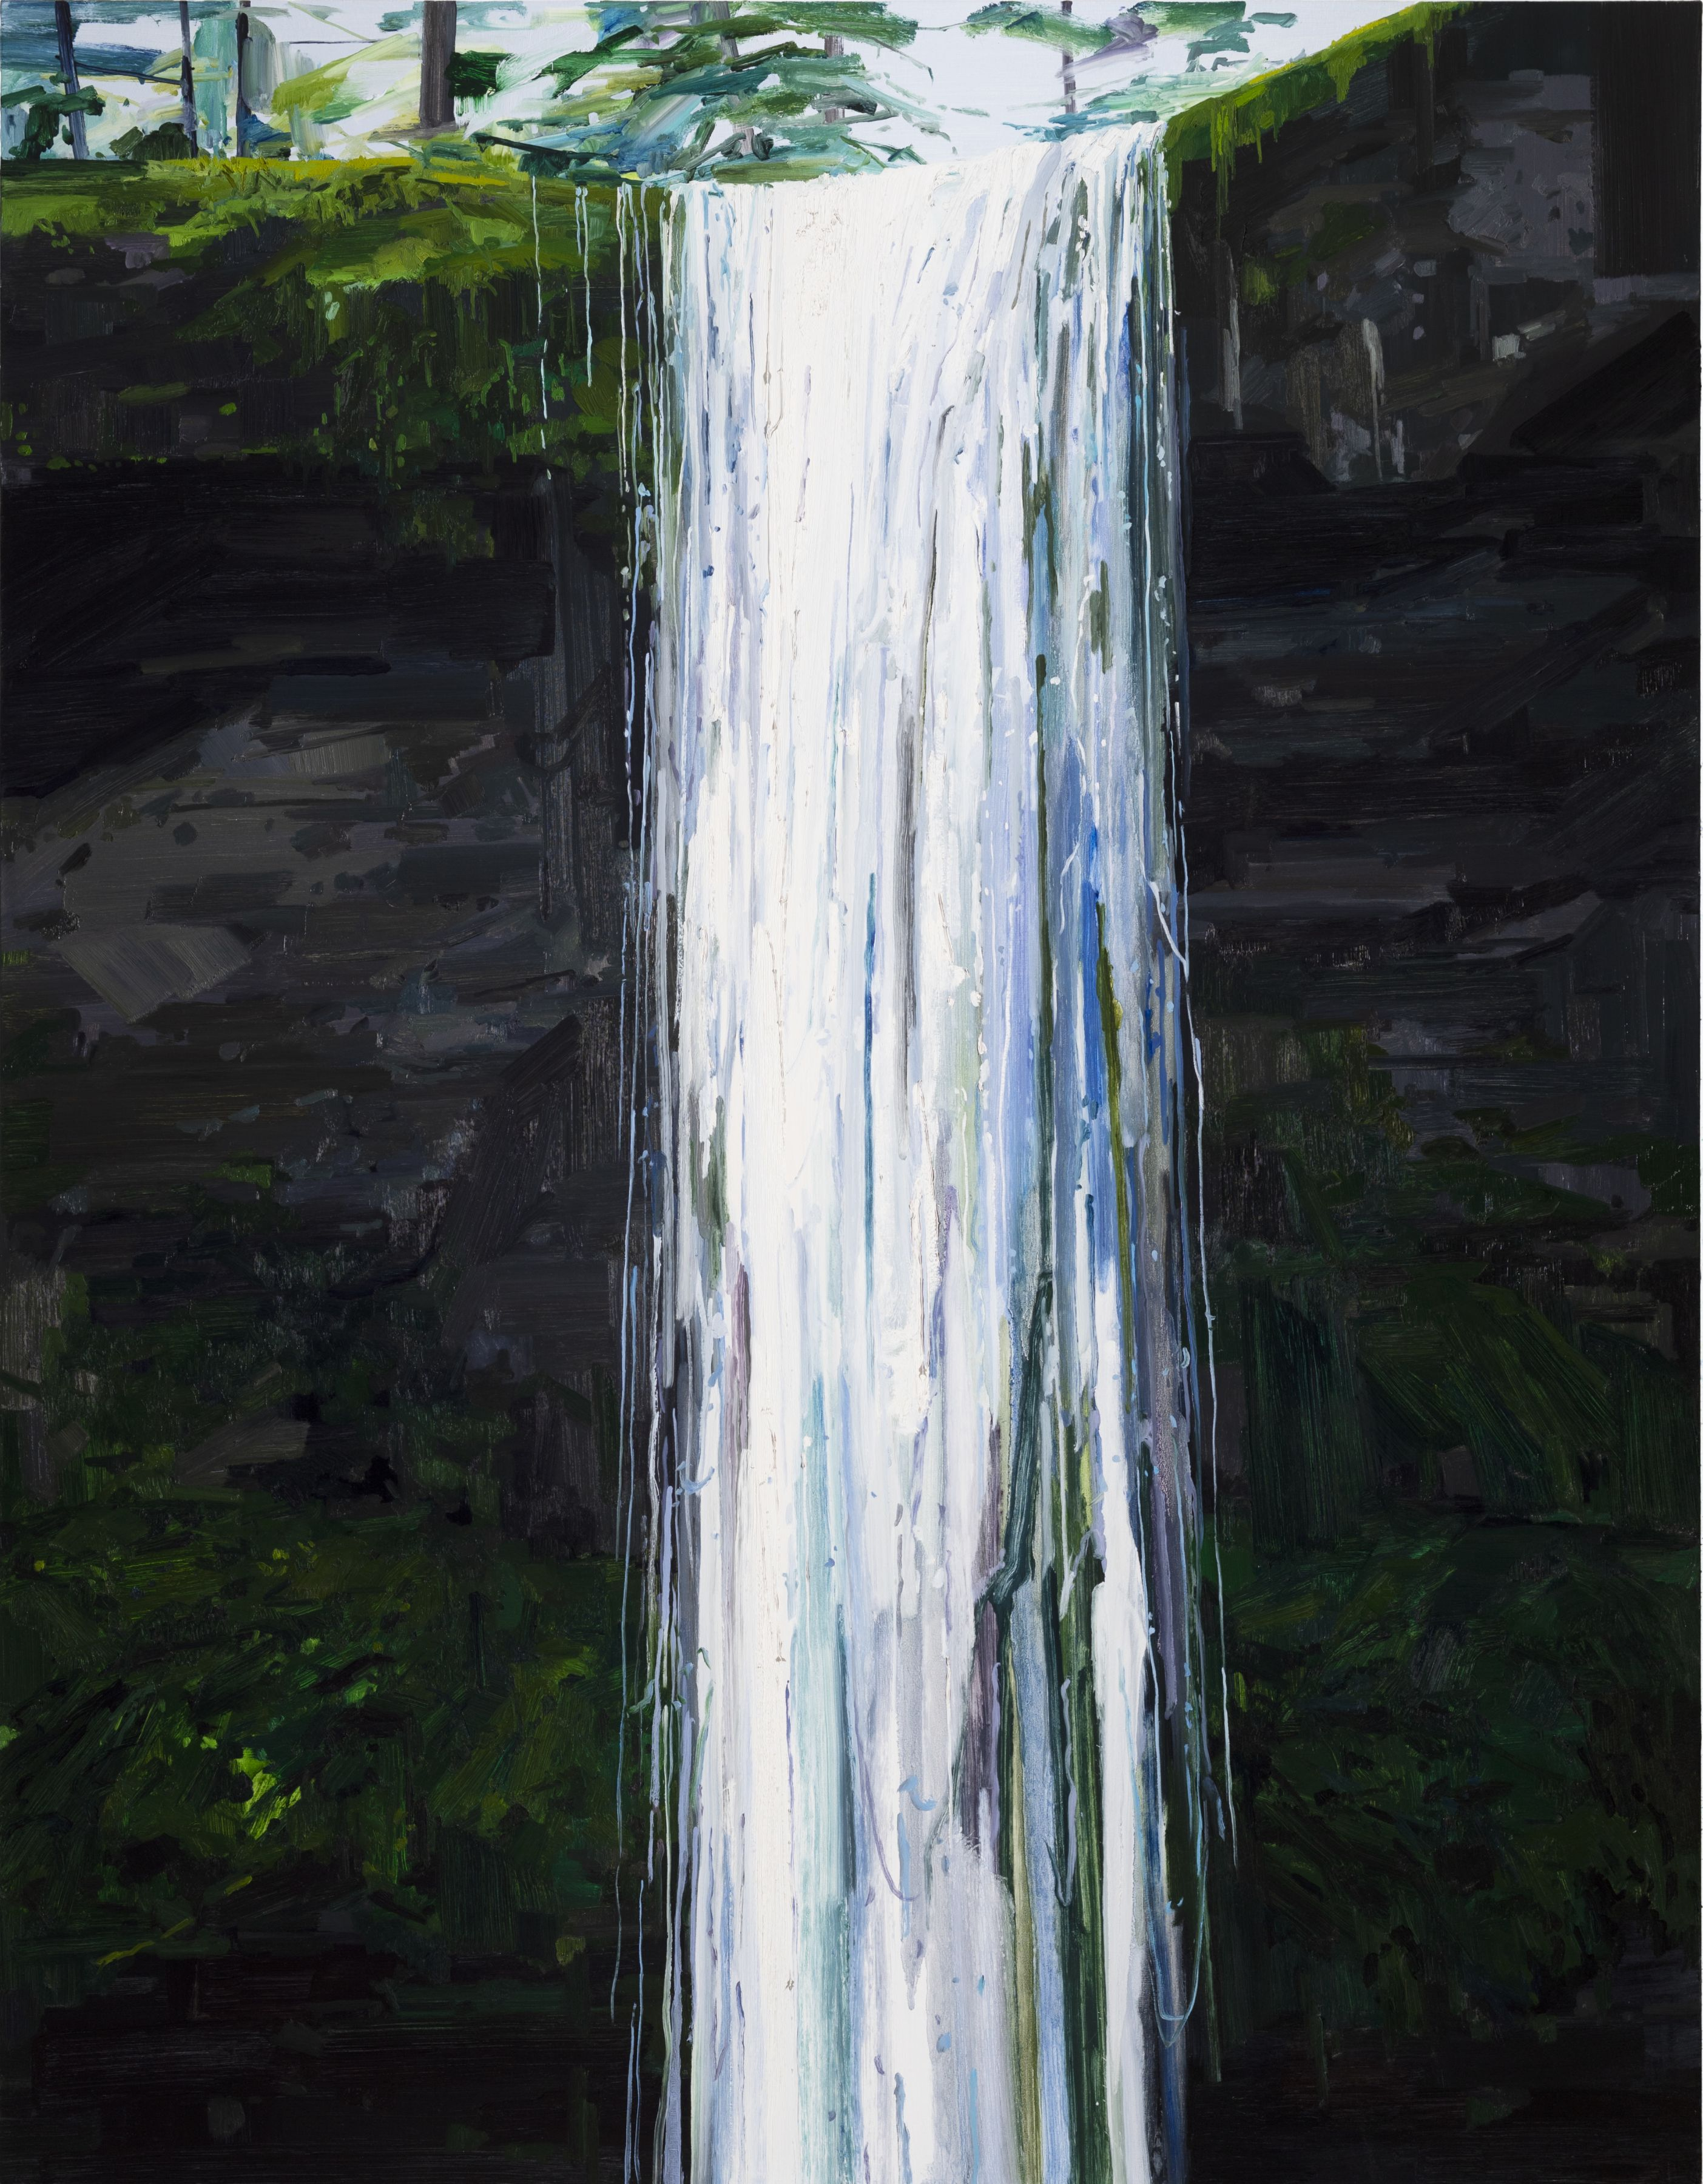 Waterfall, 2018 Oil on canvas